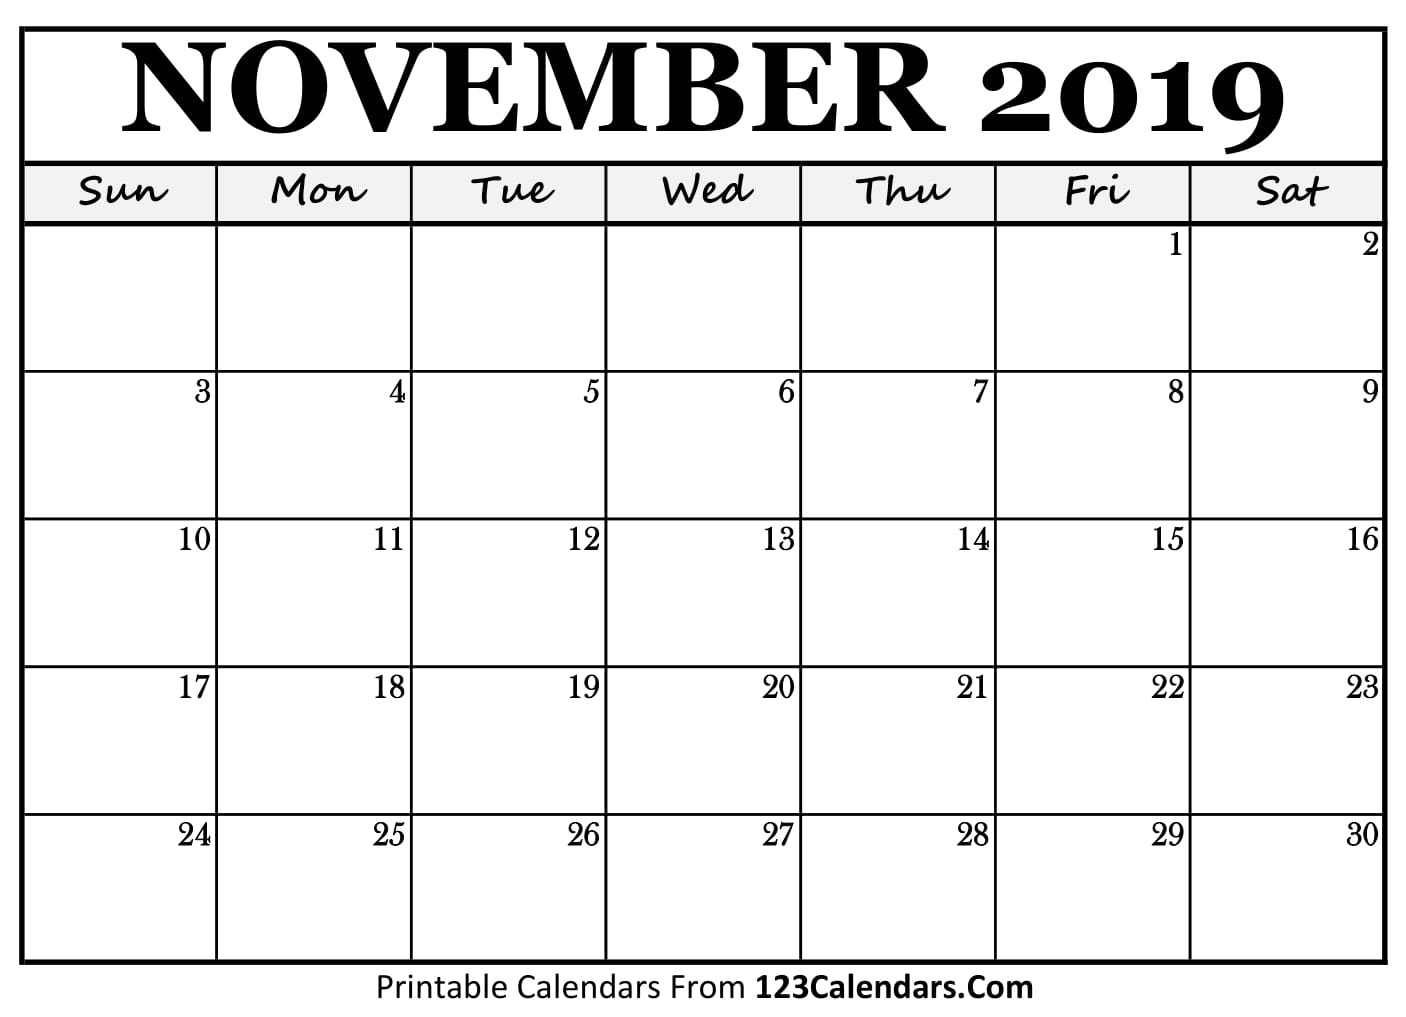 graphic regarding Printable Nov Calendar referred to as November 2019 Printable Calendar